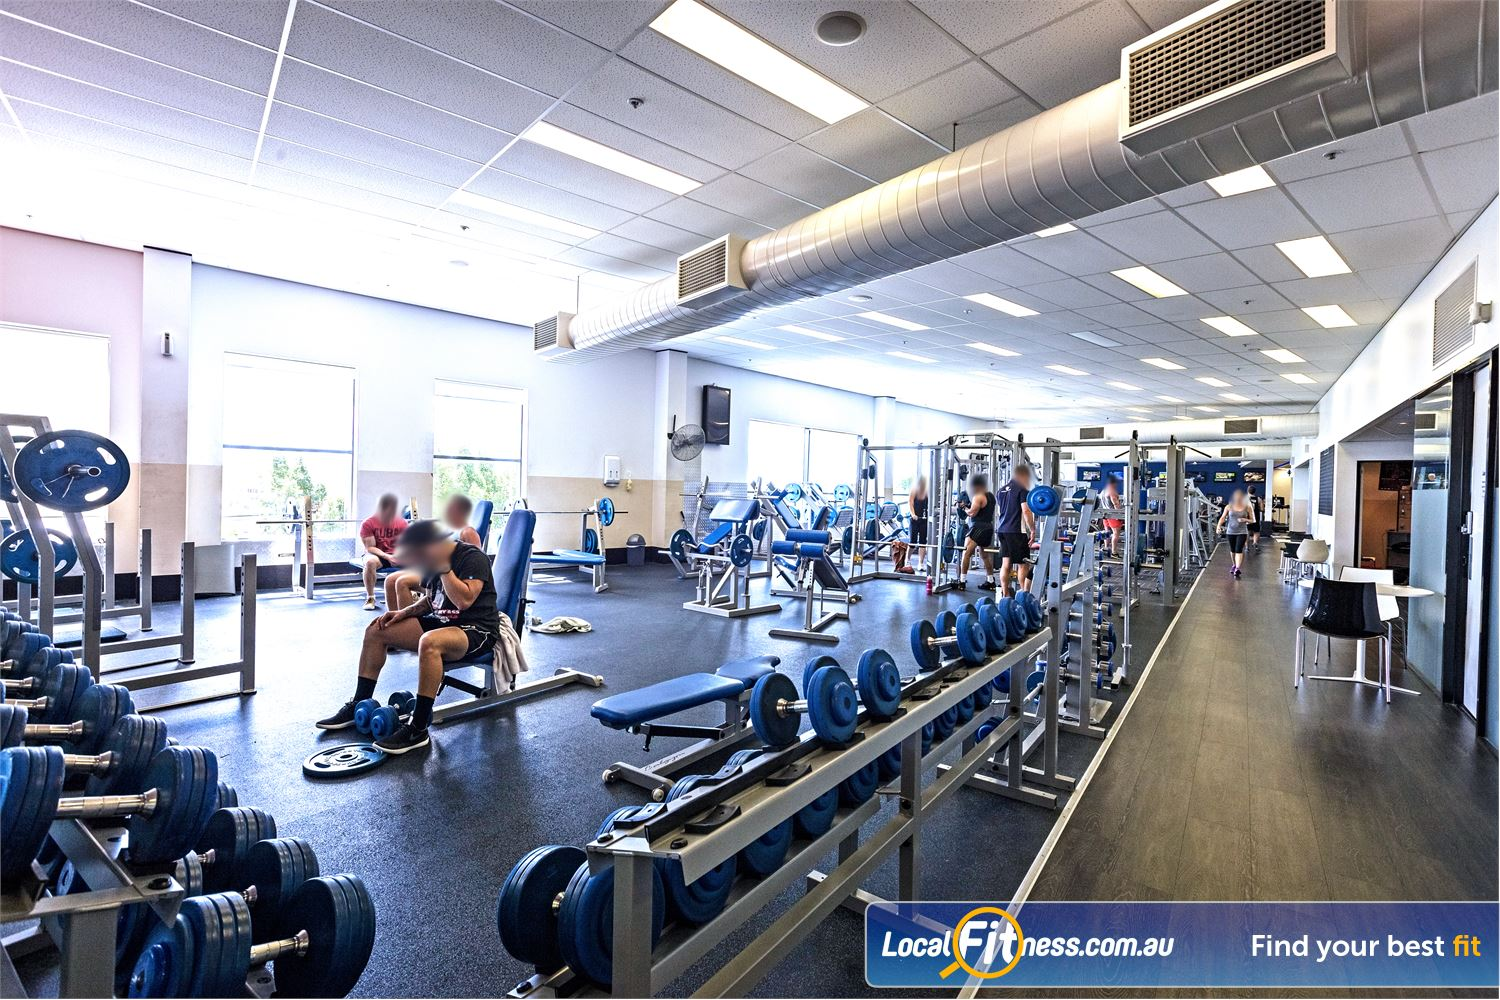 Goodlife Health Clubs Helensvale Our Helensvale gym includes a comprehensive range of free-weights.